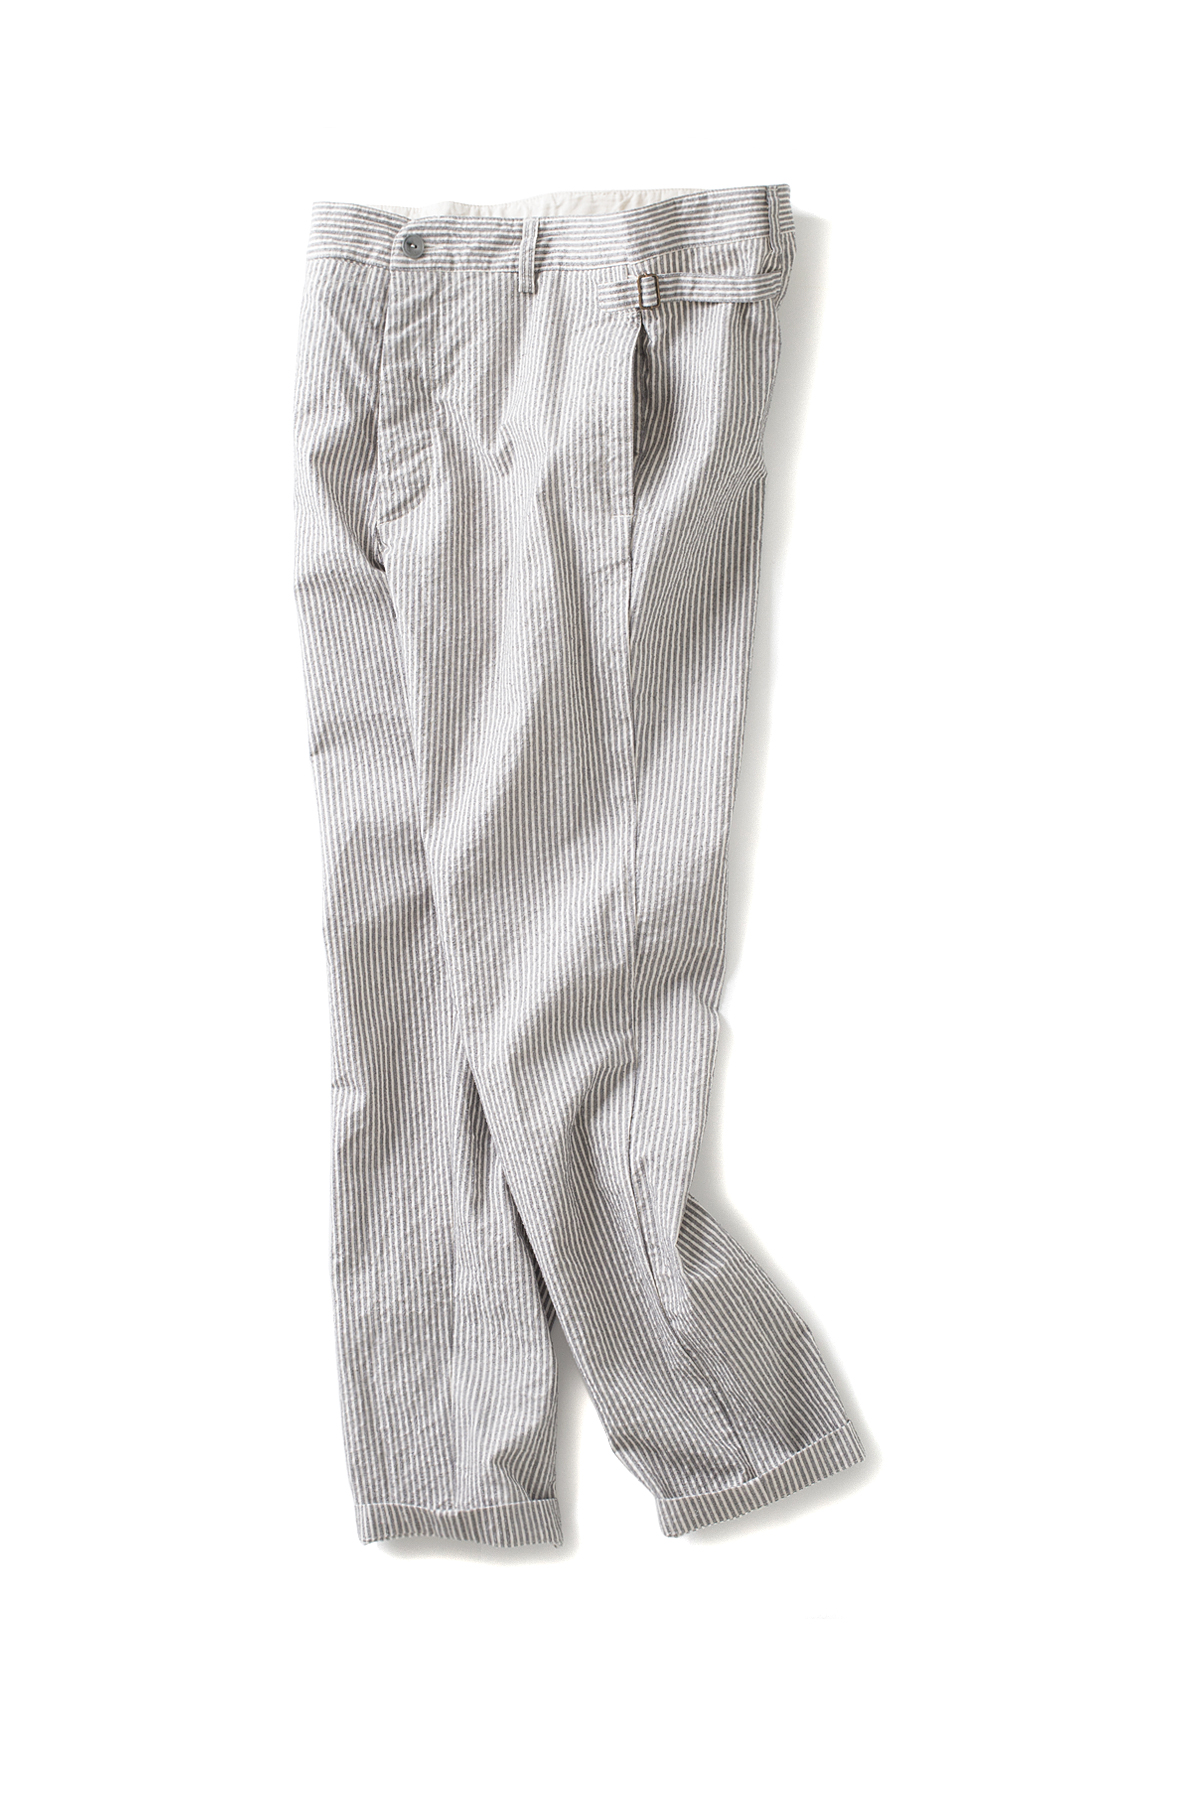 EHS : Milley Pants (Stripe)